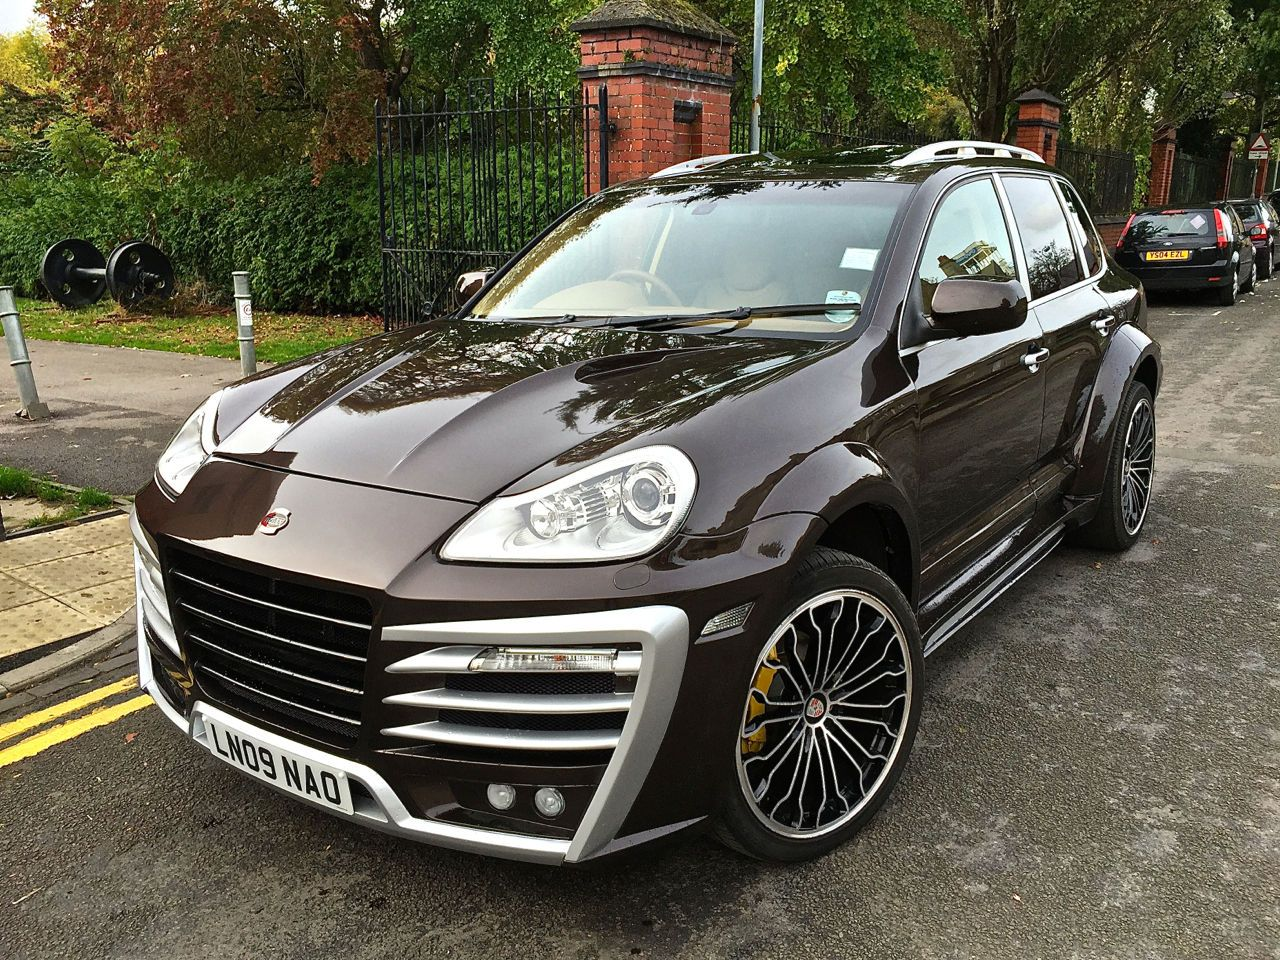 2009 957 porsche cayenne techart magnum tiptronic s brown 1 owner 32 000mil cars. Black Bedroom Furniture Sets. Home Design Ideas